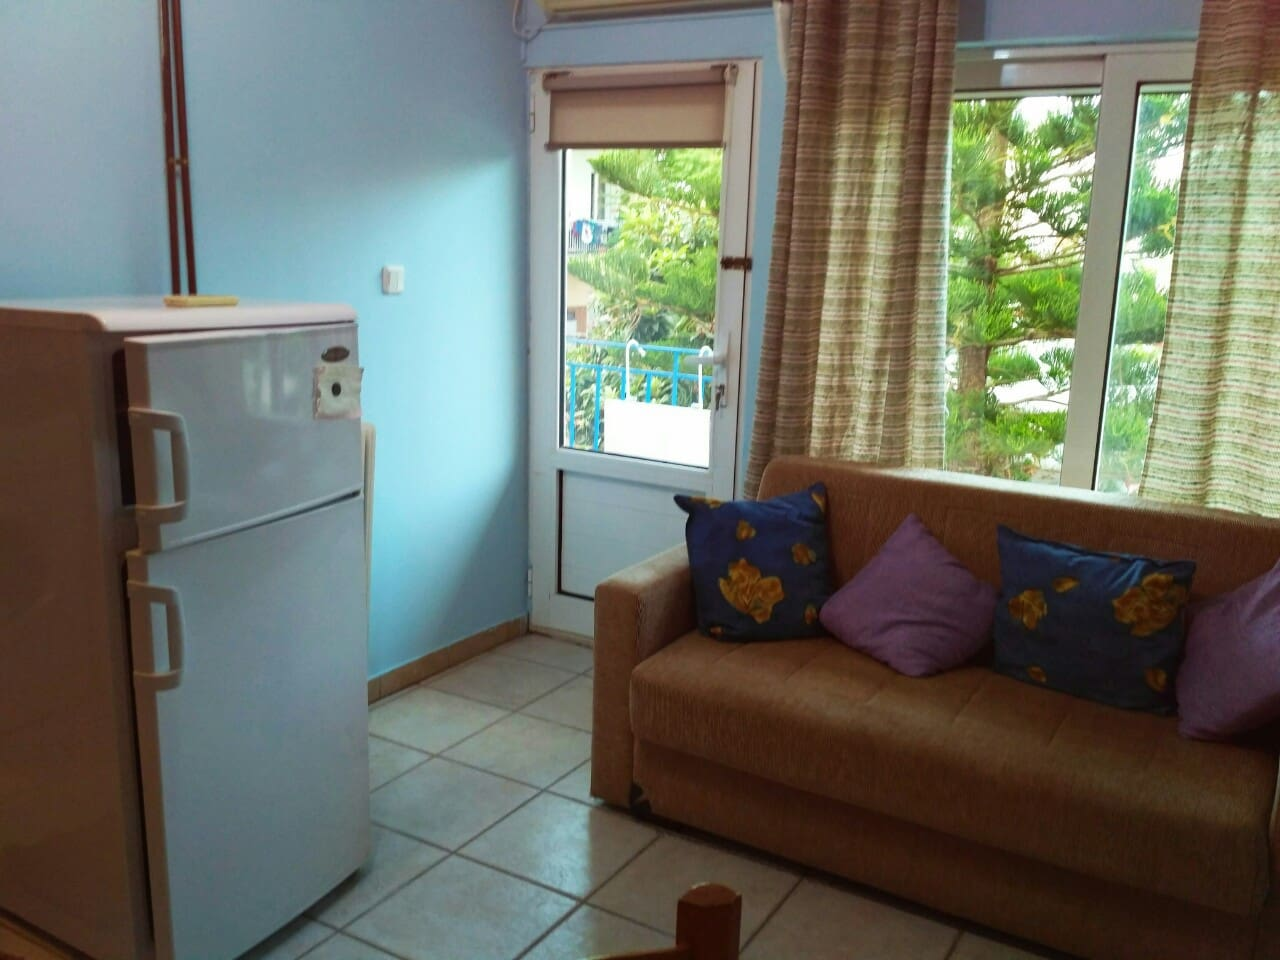 kitchen area with a sofa